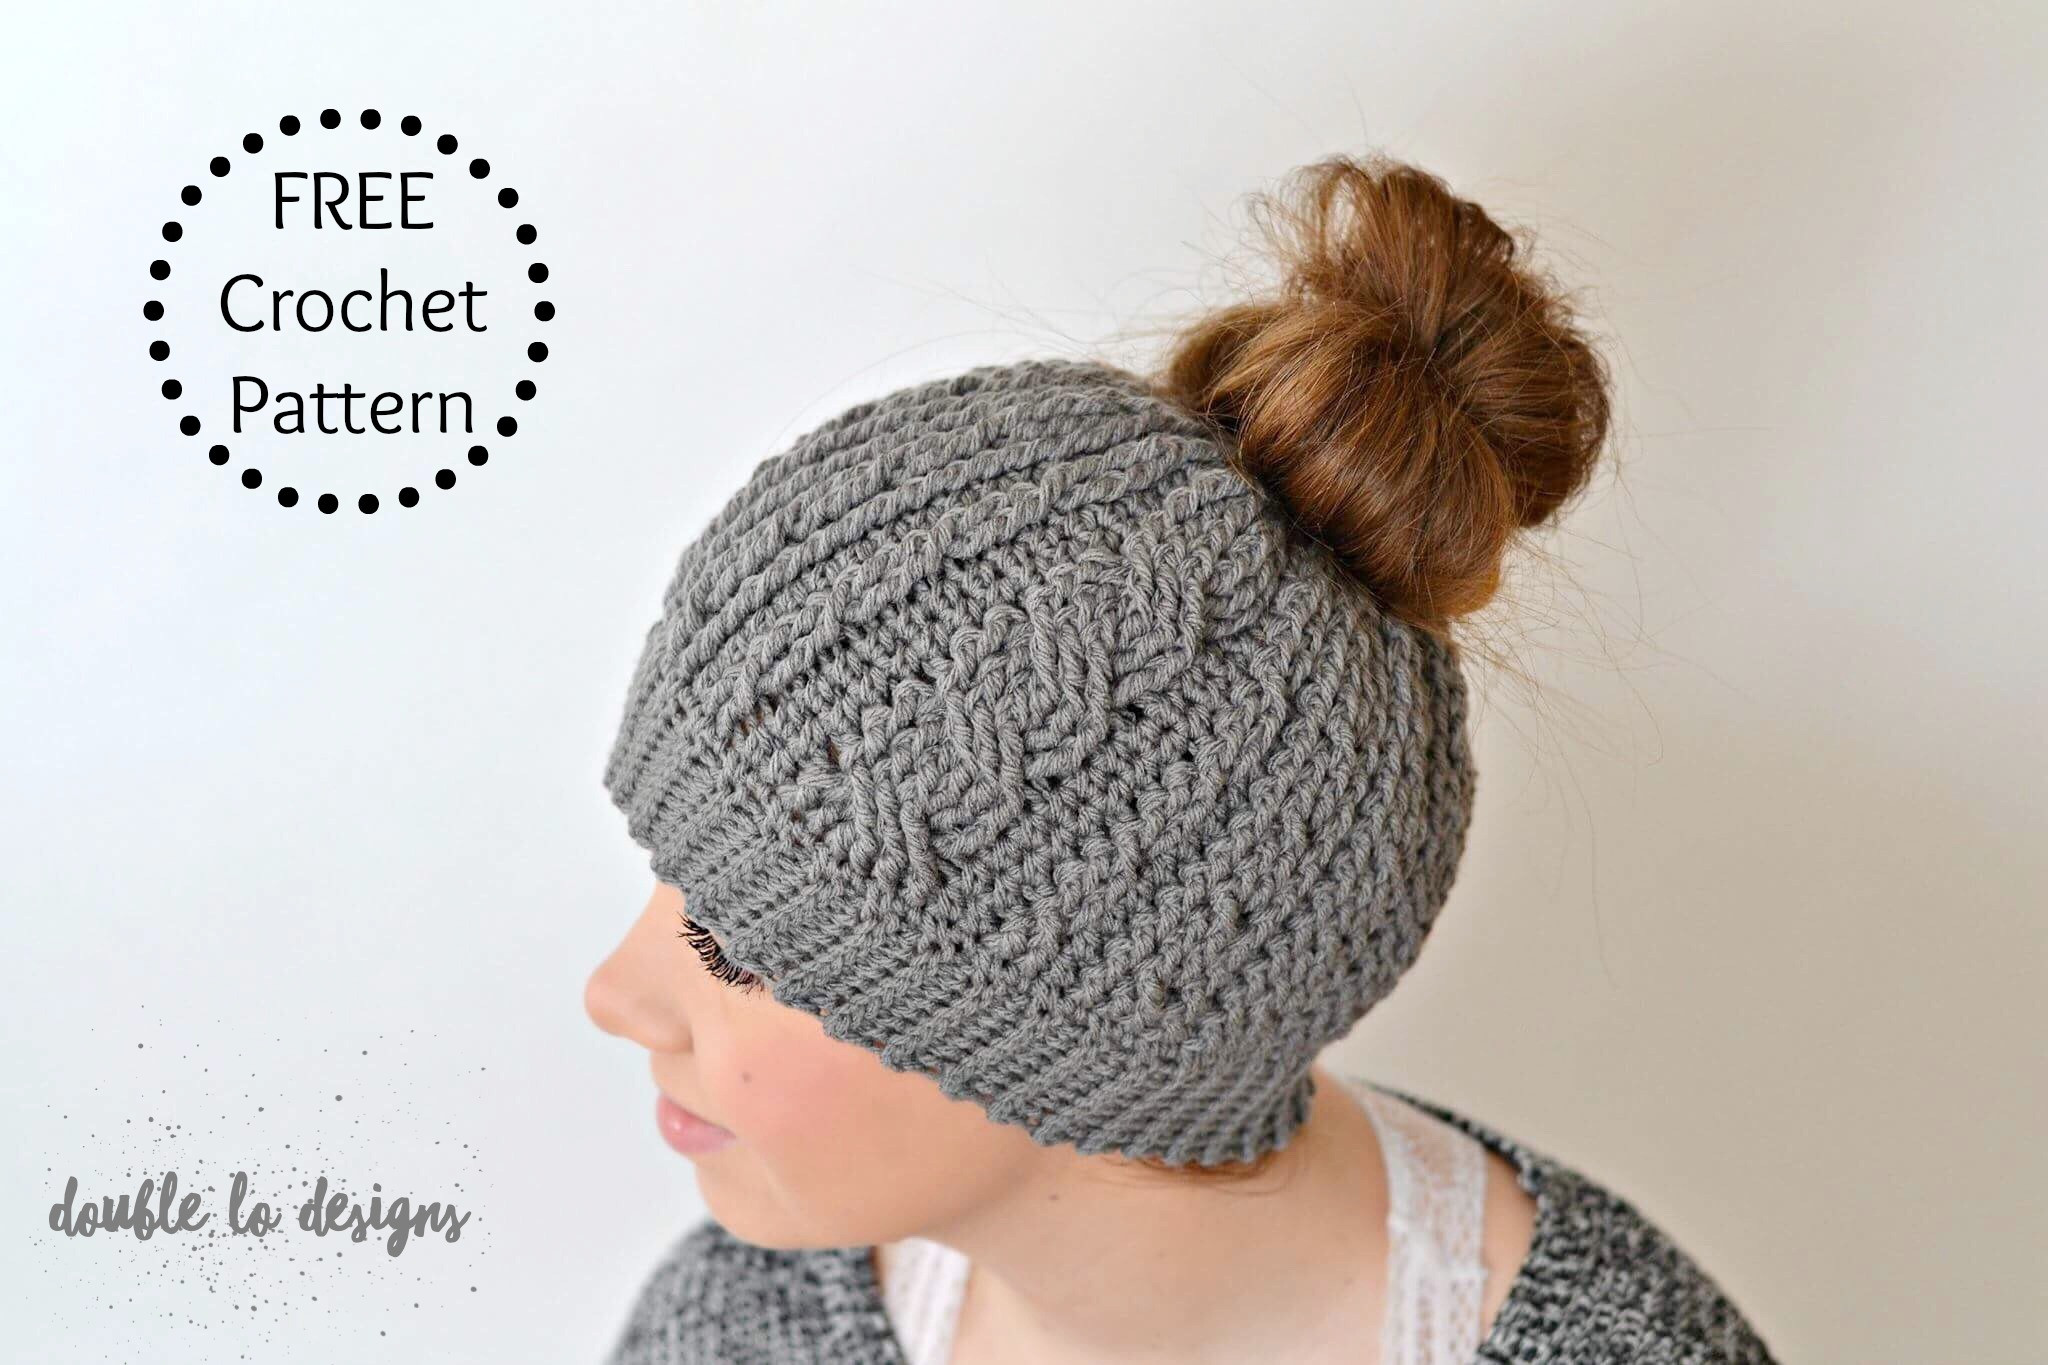 free crochet pattern crochet cabled messy bun hat adult sizes video tutorial included